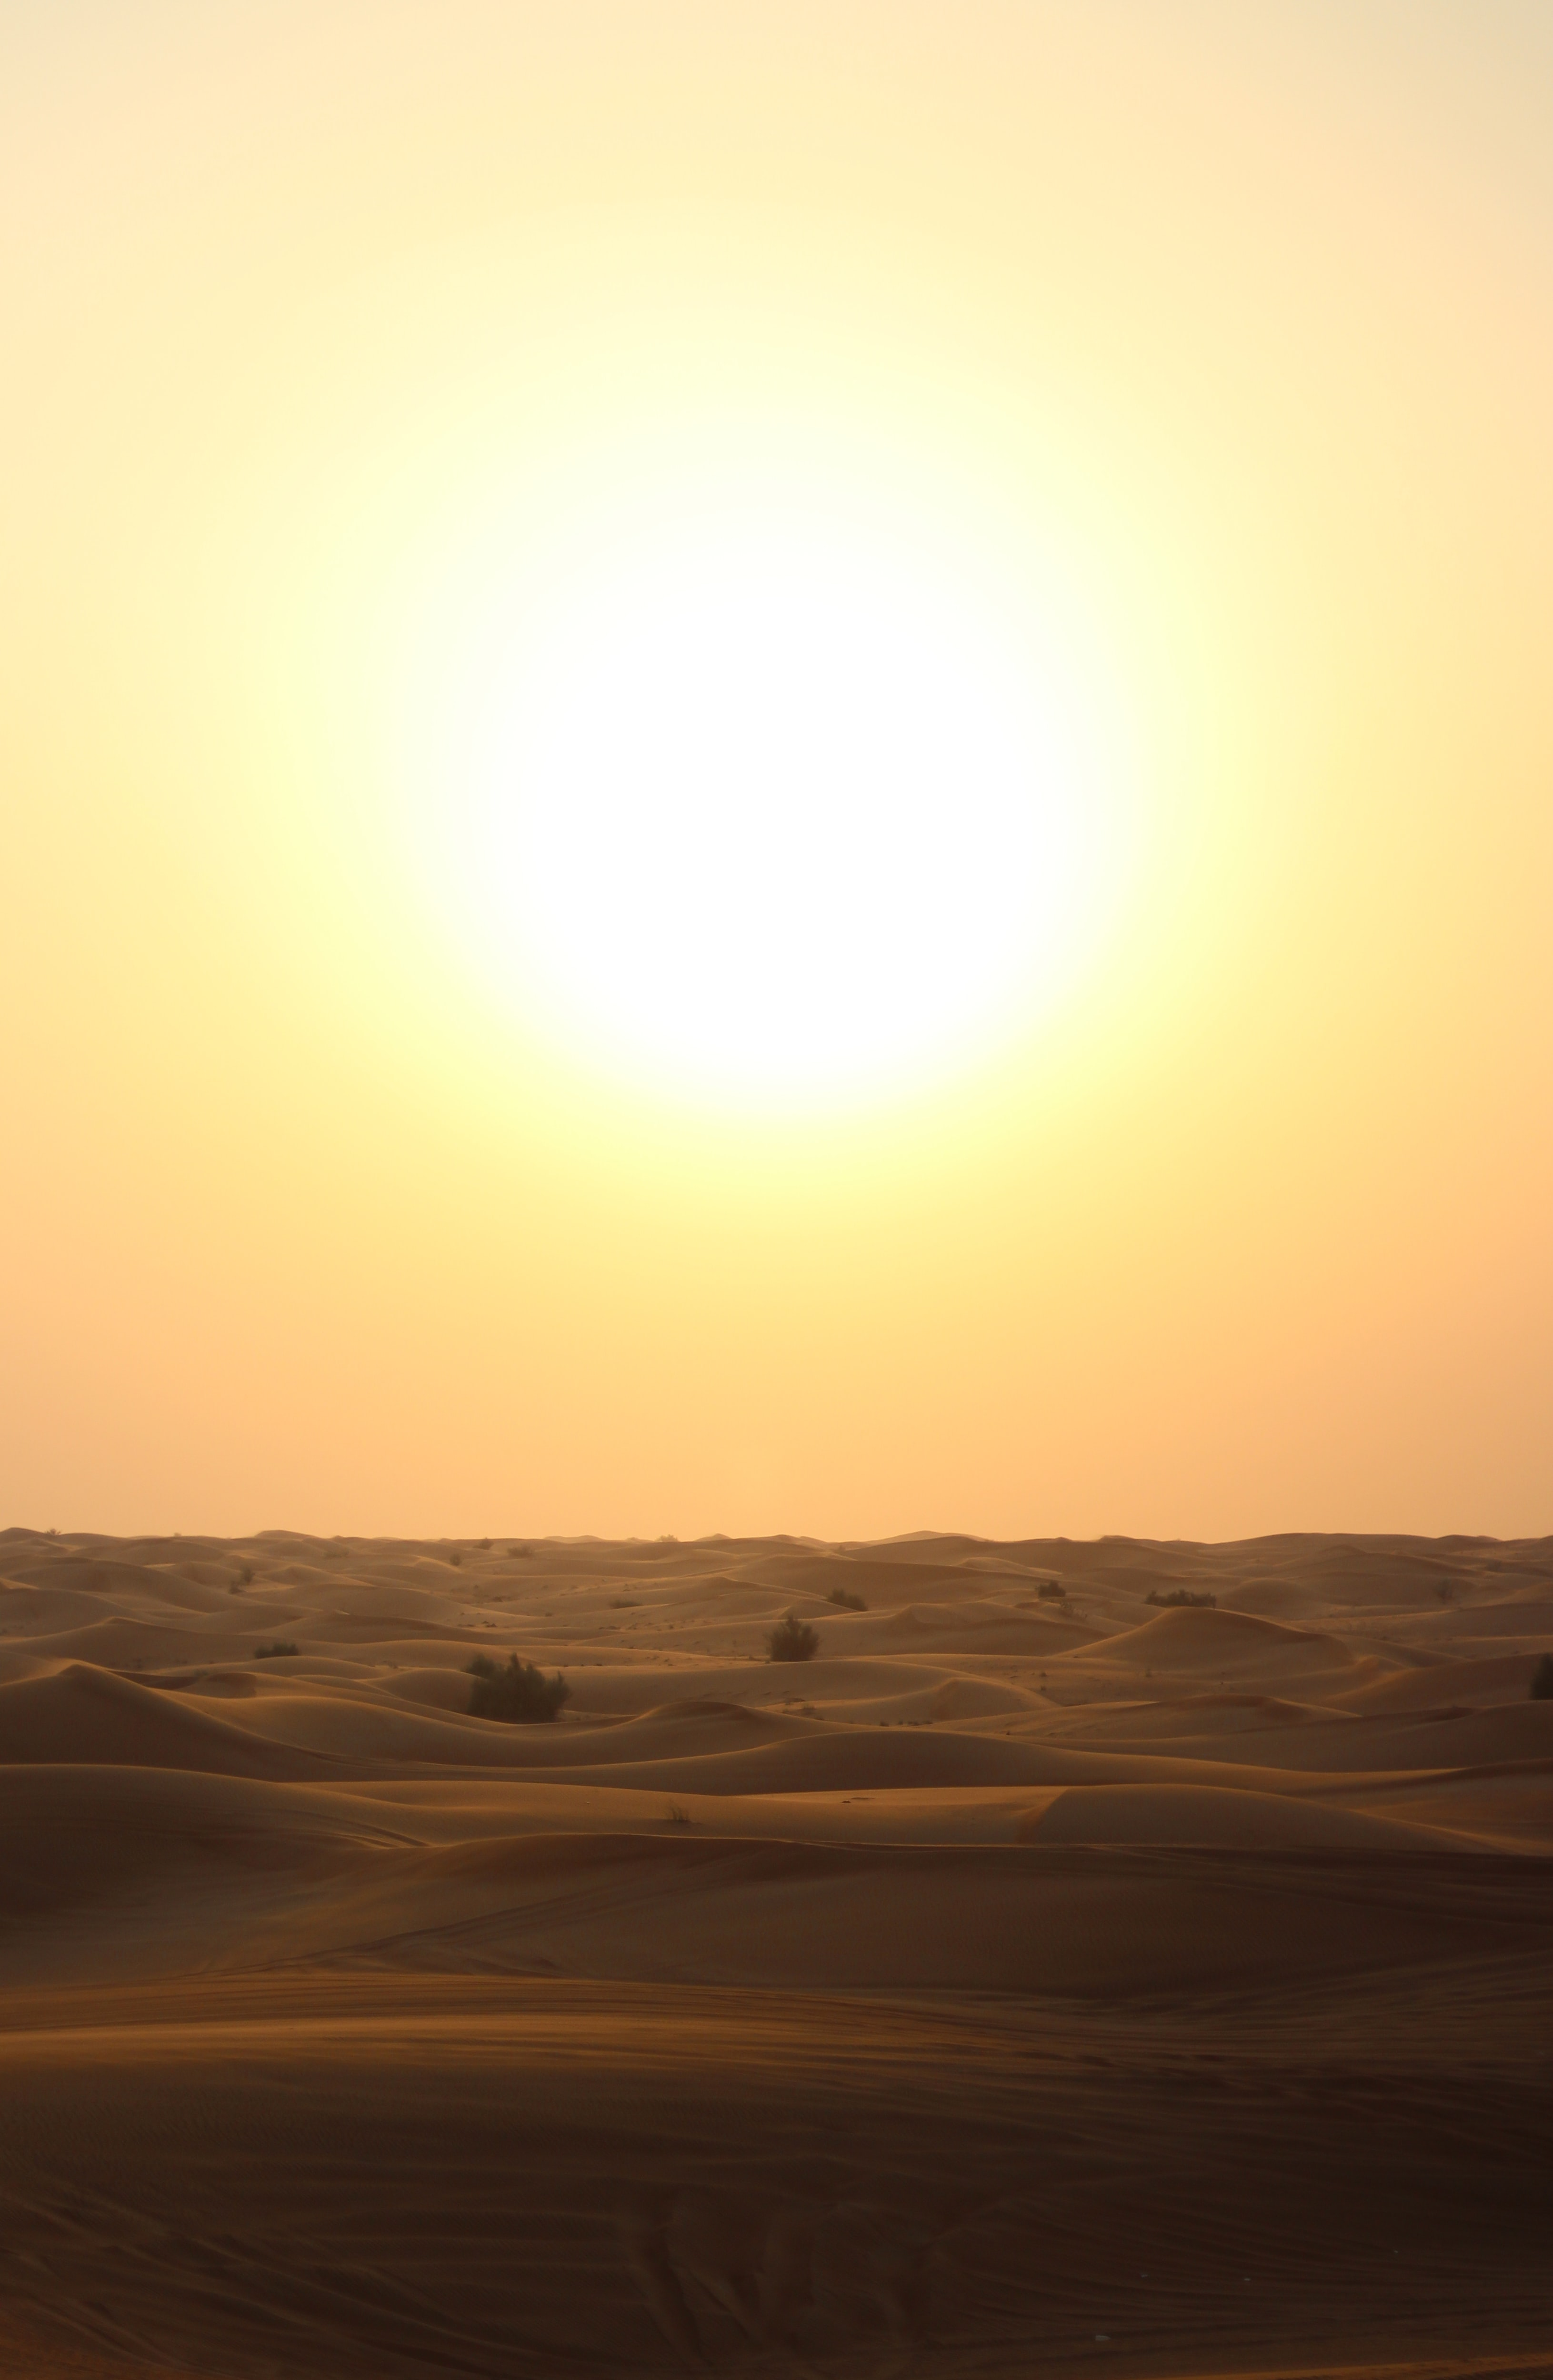 Sufficient view of the sunset over a Dubai desert on summer evening